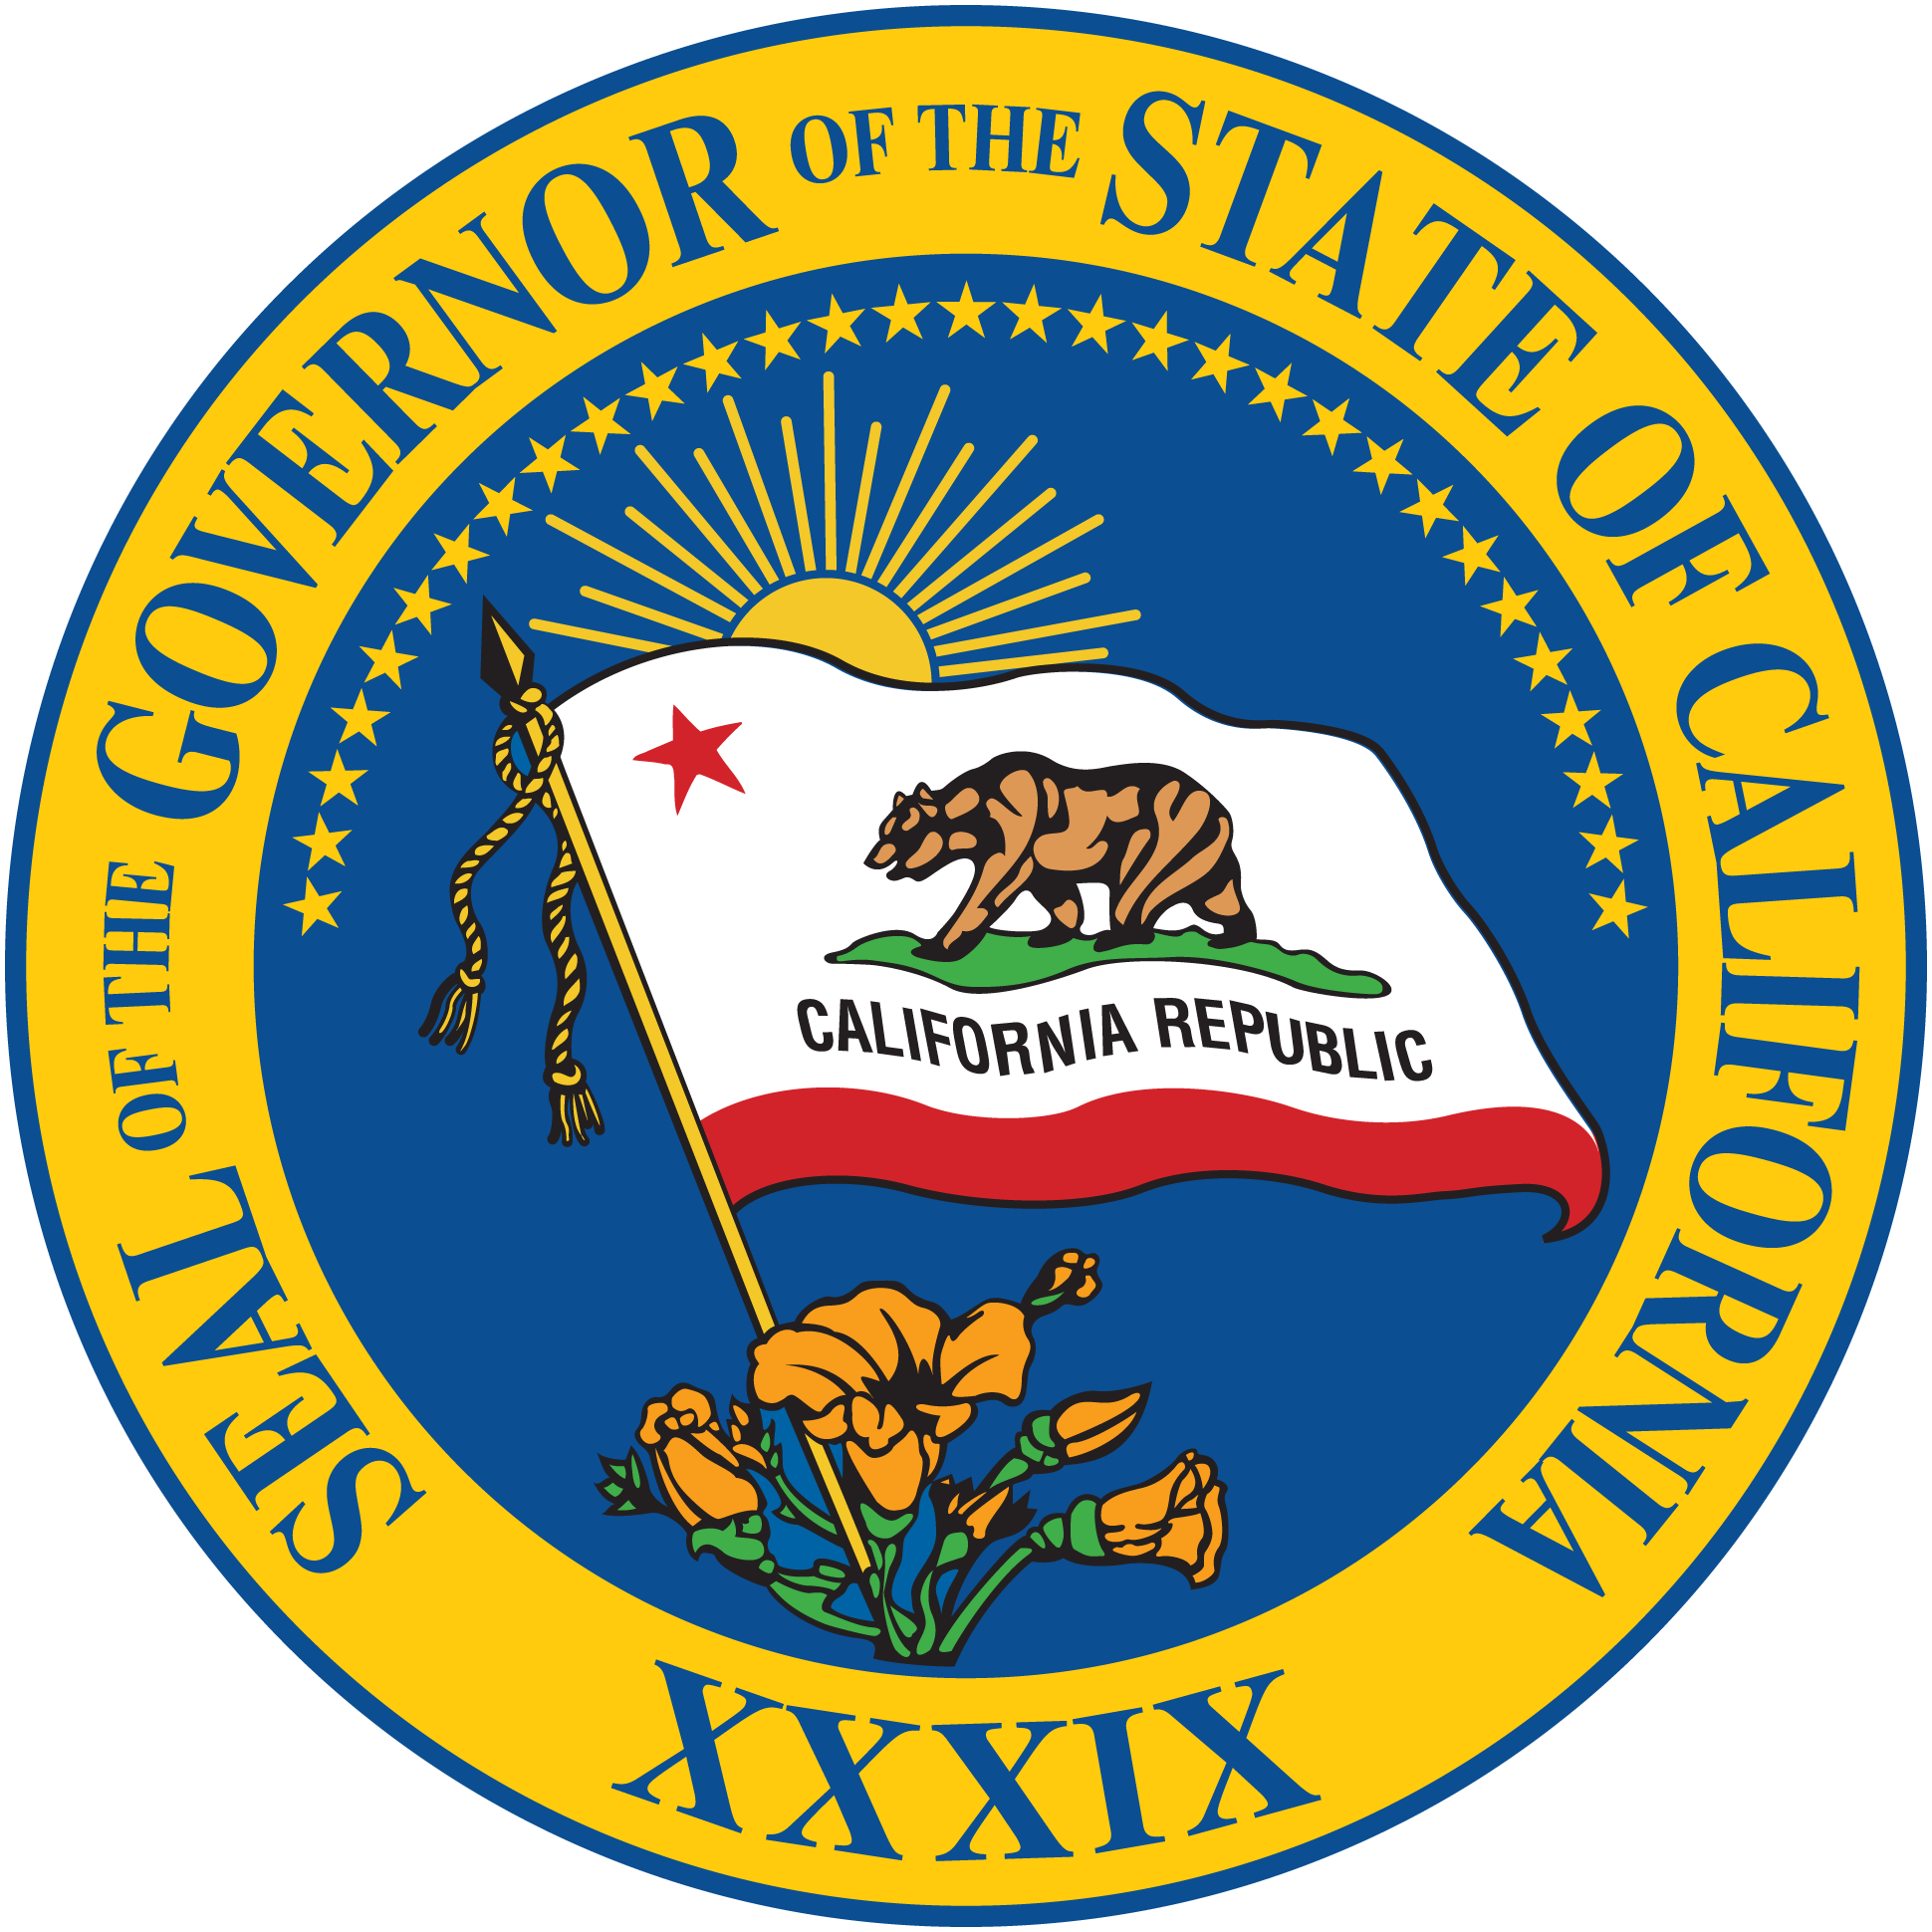 File:Seal of the 39th Governor of California.png.